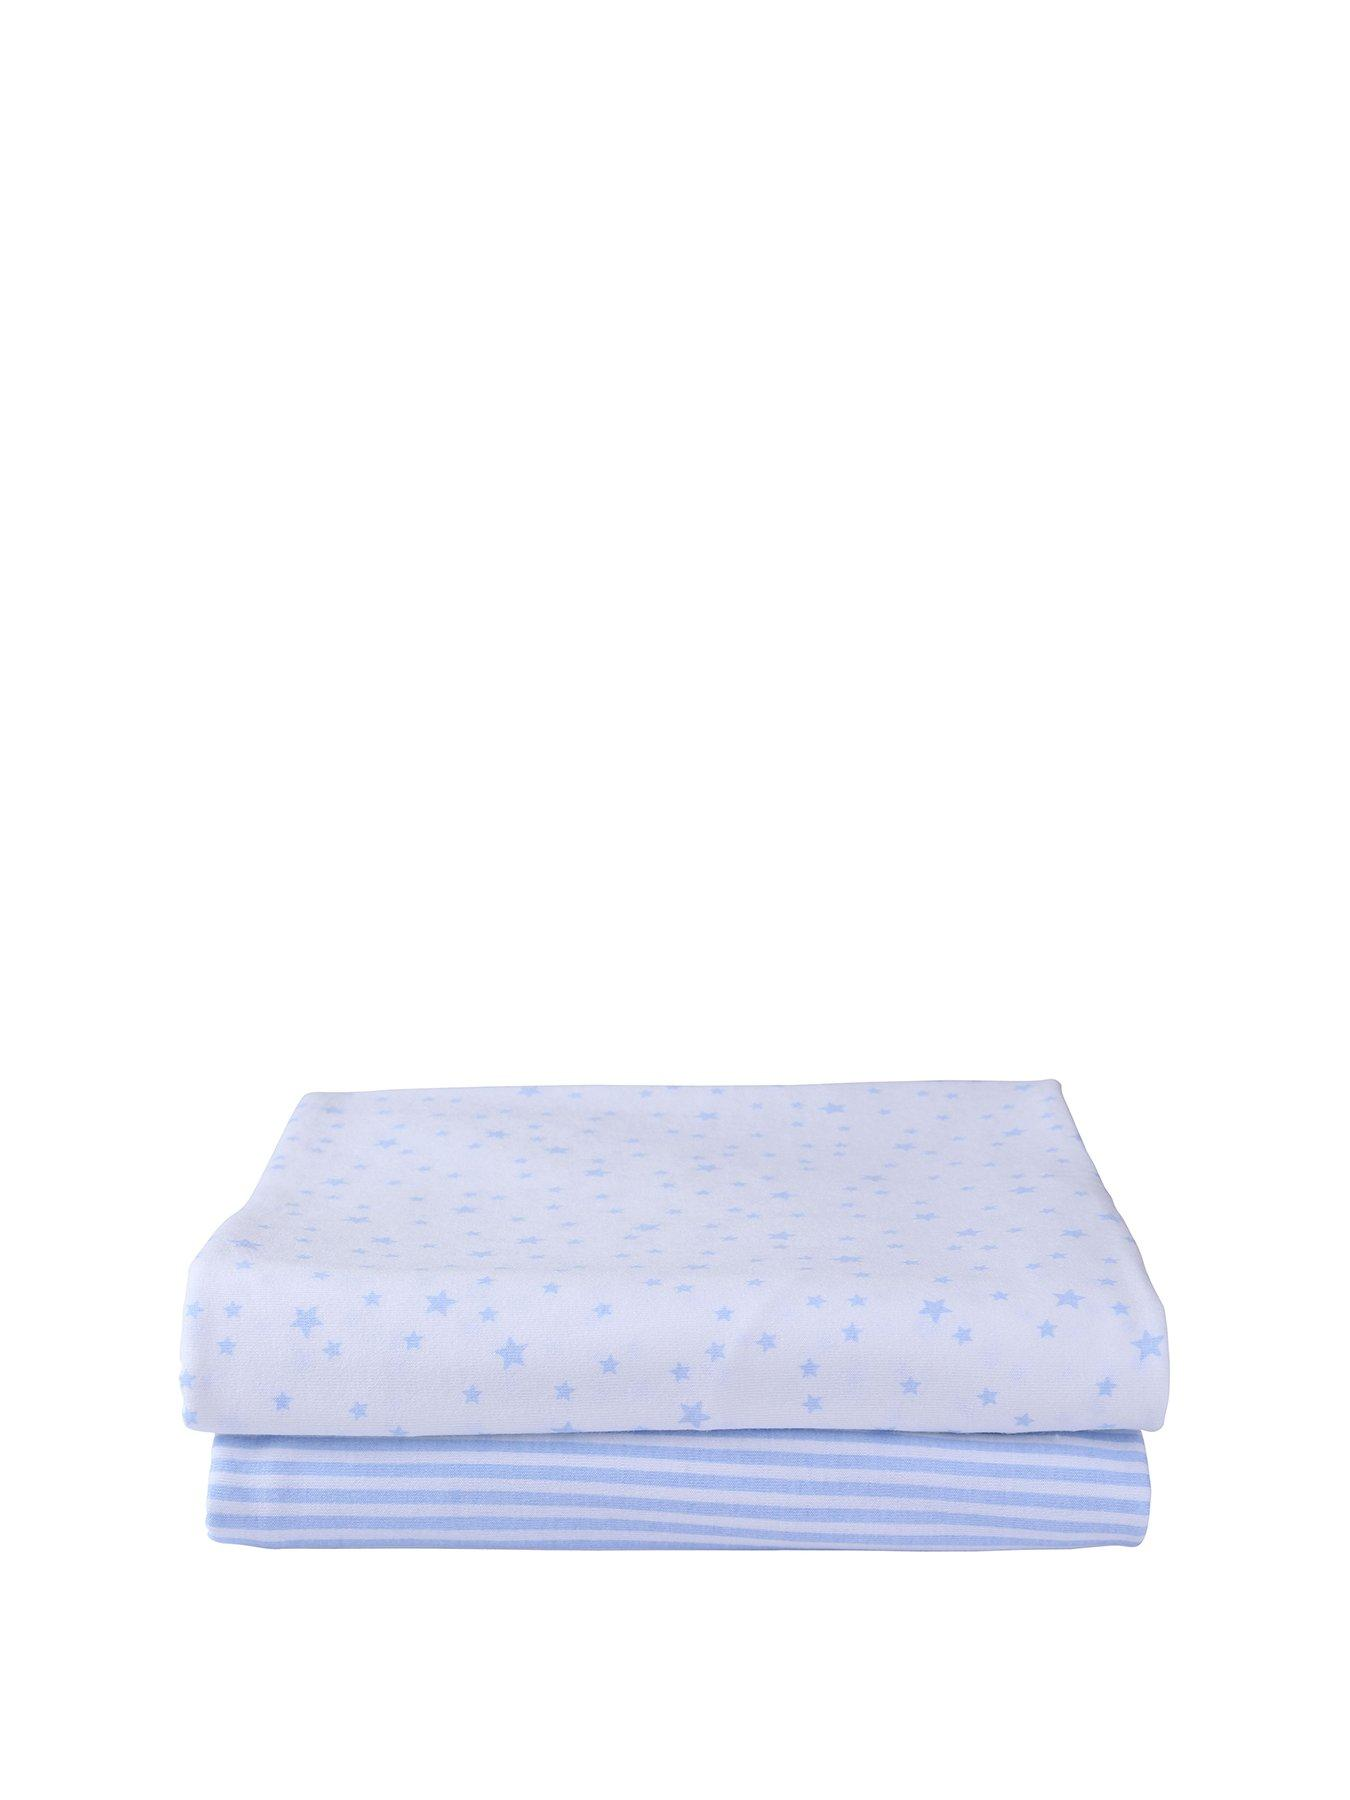 New Little Dreams Boutique Baby Blue Knitted Stripe Blanket 75 x 100cm Pram Cot